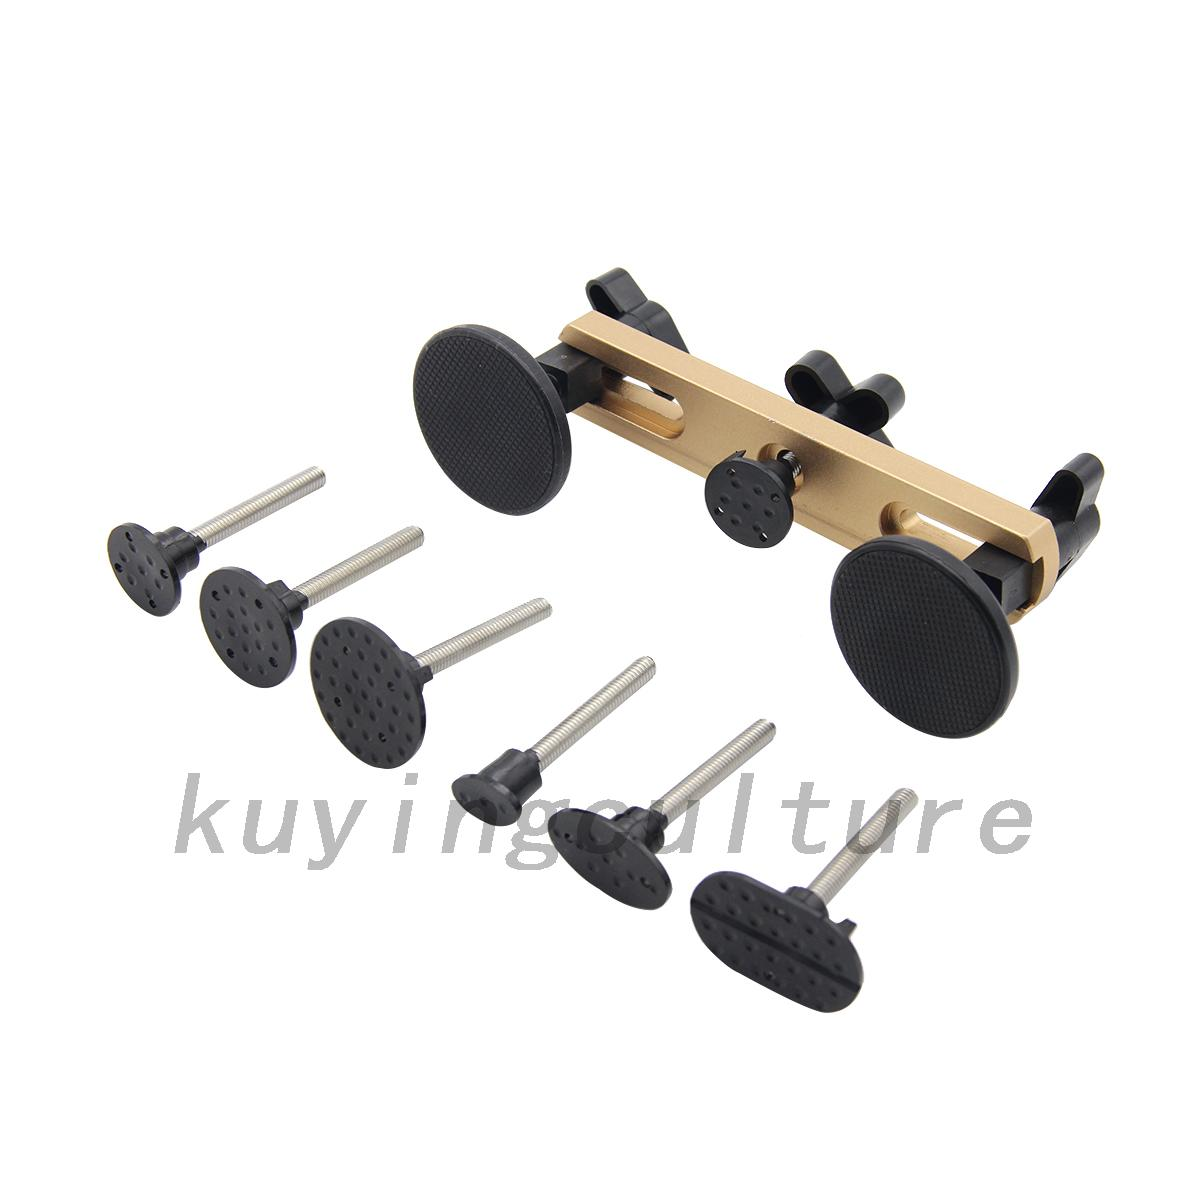 auto fahrzeug dellen beulen ausbeulen removal puller reparatur werkzeug set ebay. Black Bedroom Furniture Sets. Home Design Ideas